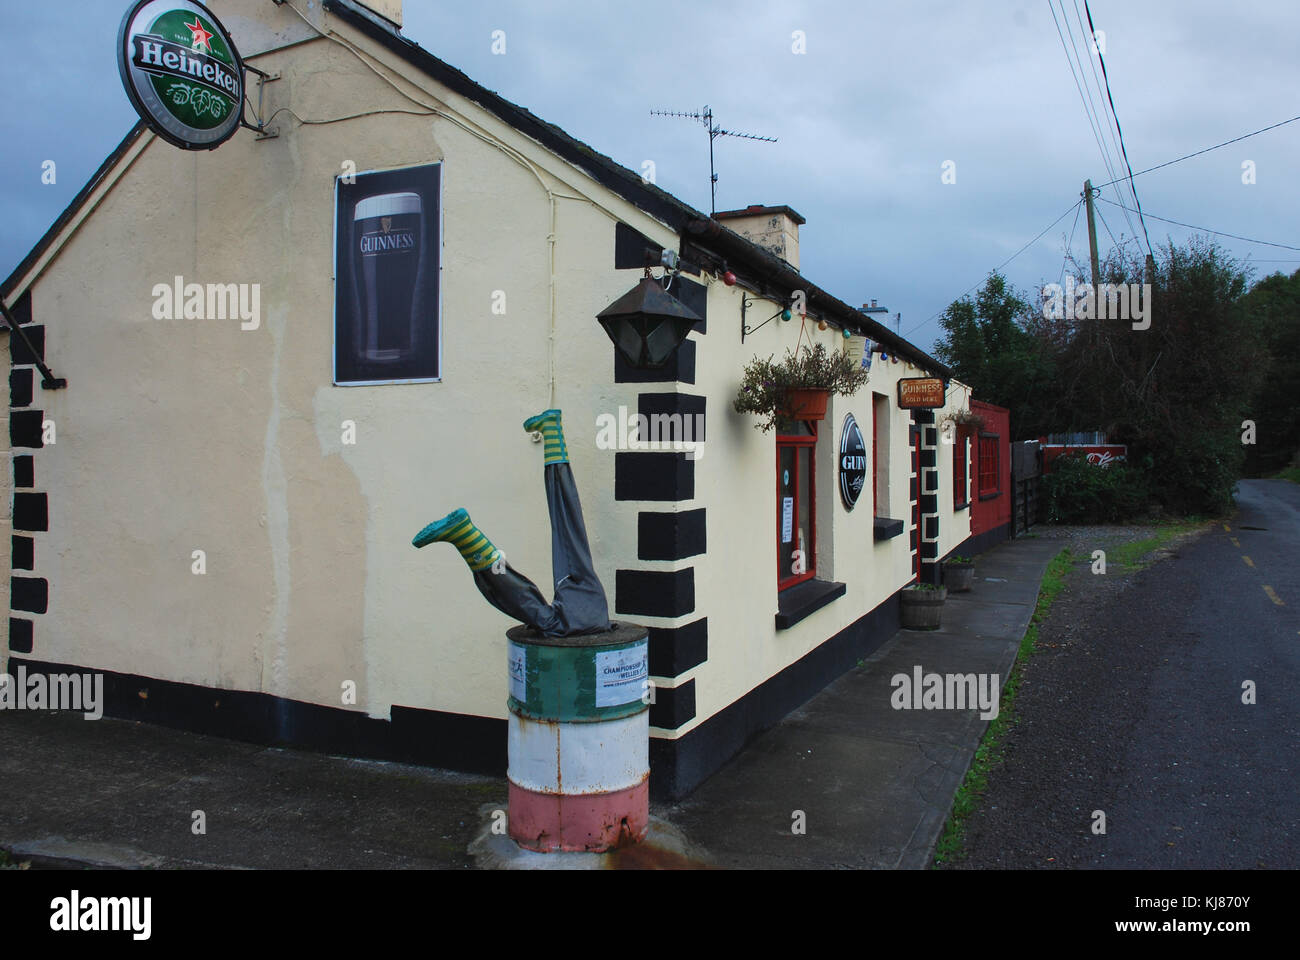 Irish pub near Cork - Stock Image